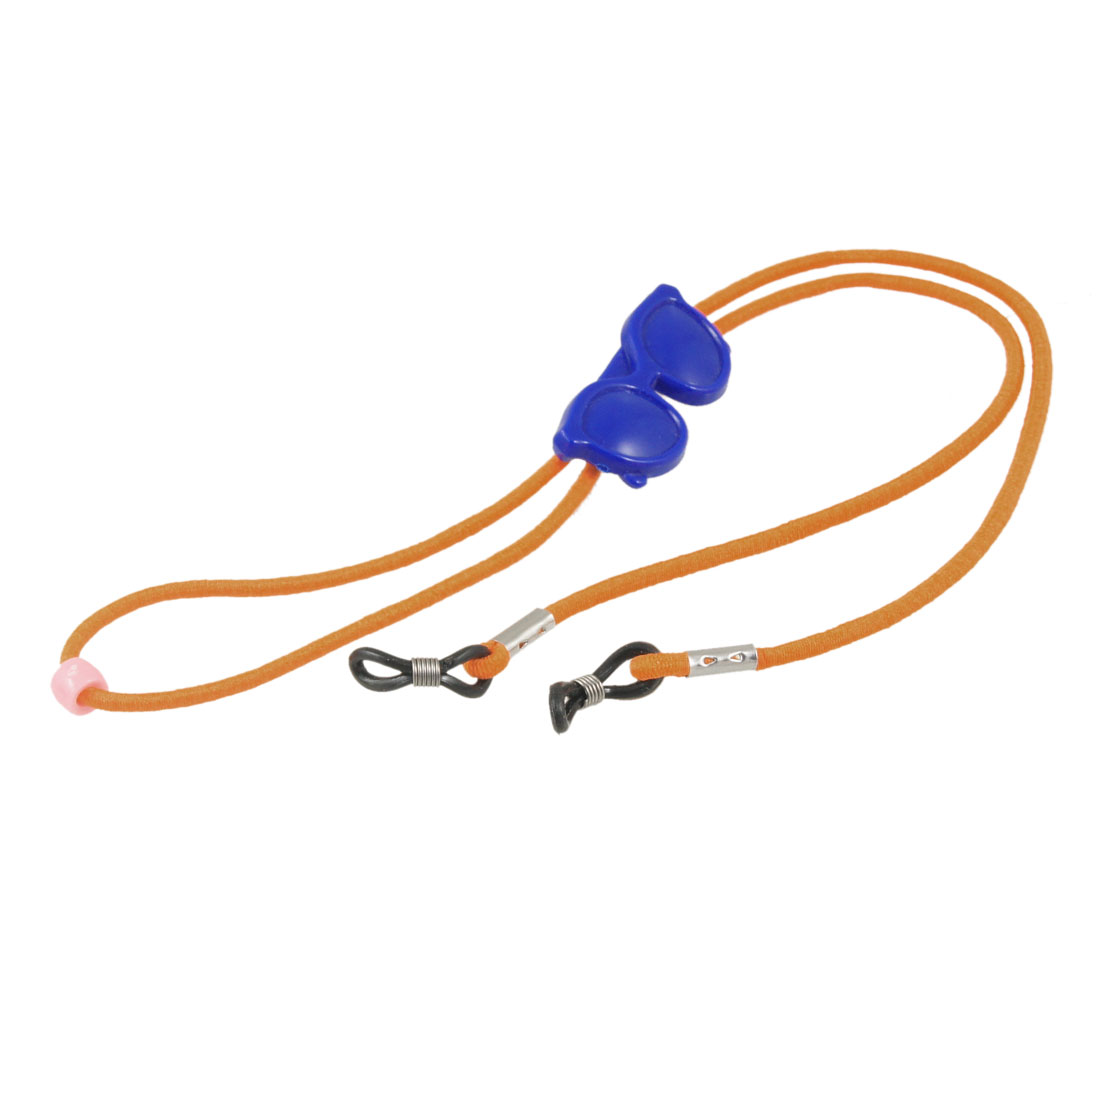 Orange Stretchy Nylon Neck String Blue Plastic Glasses Decor Eyewear Retainer Cord